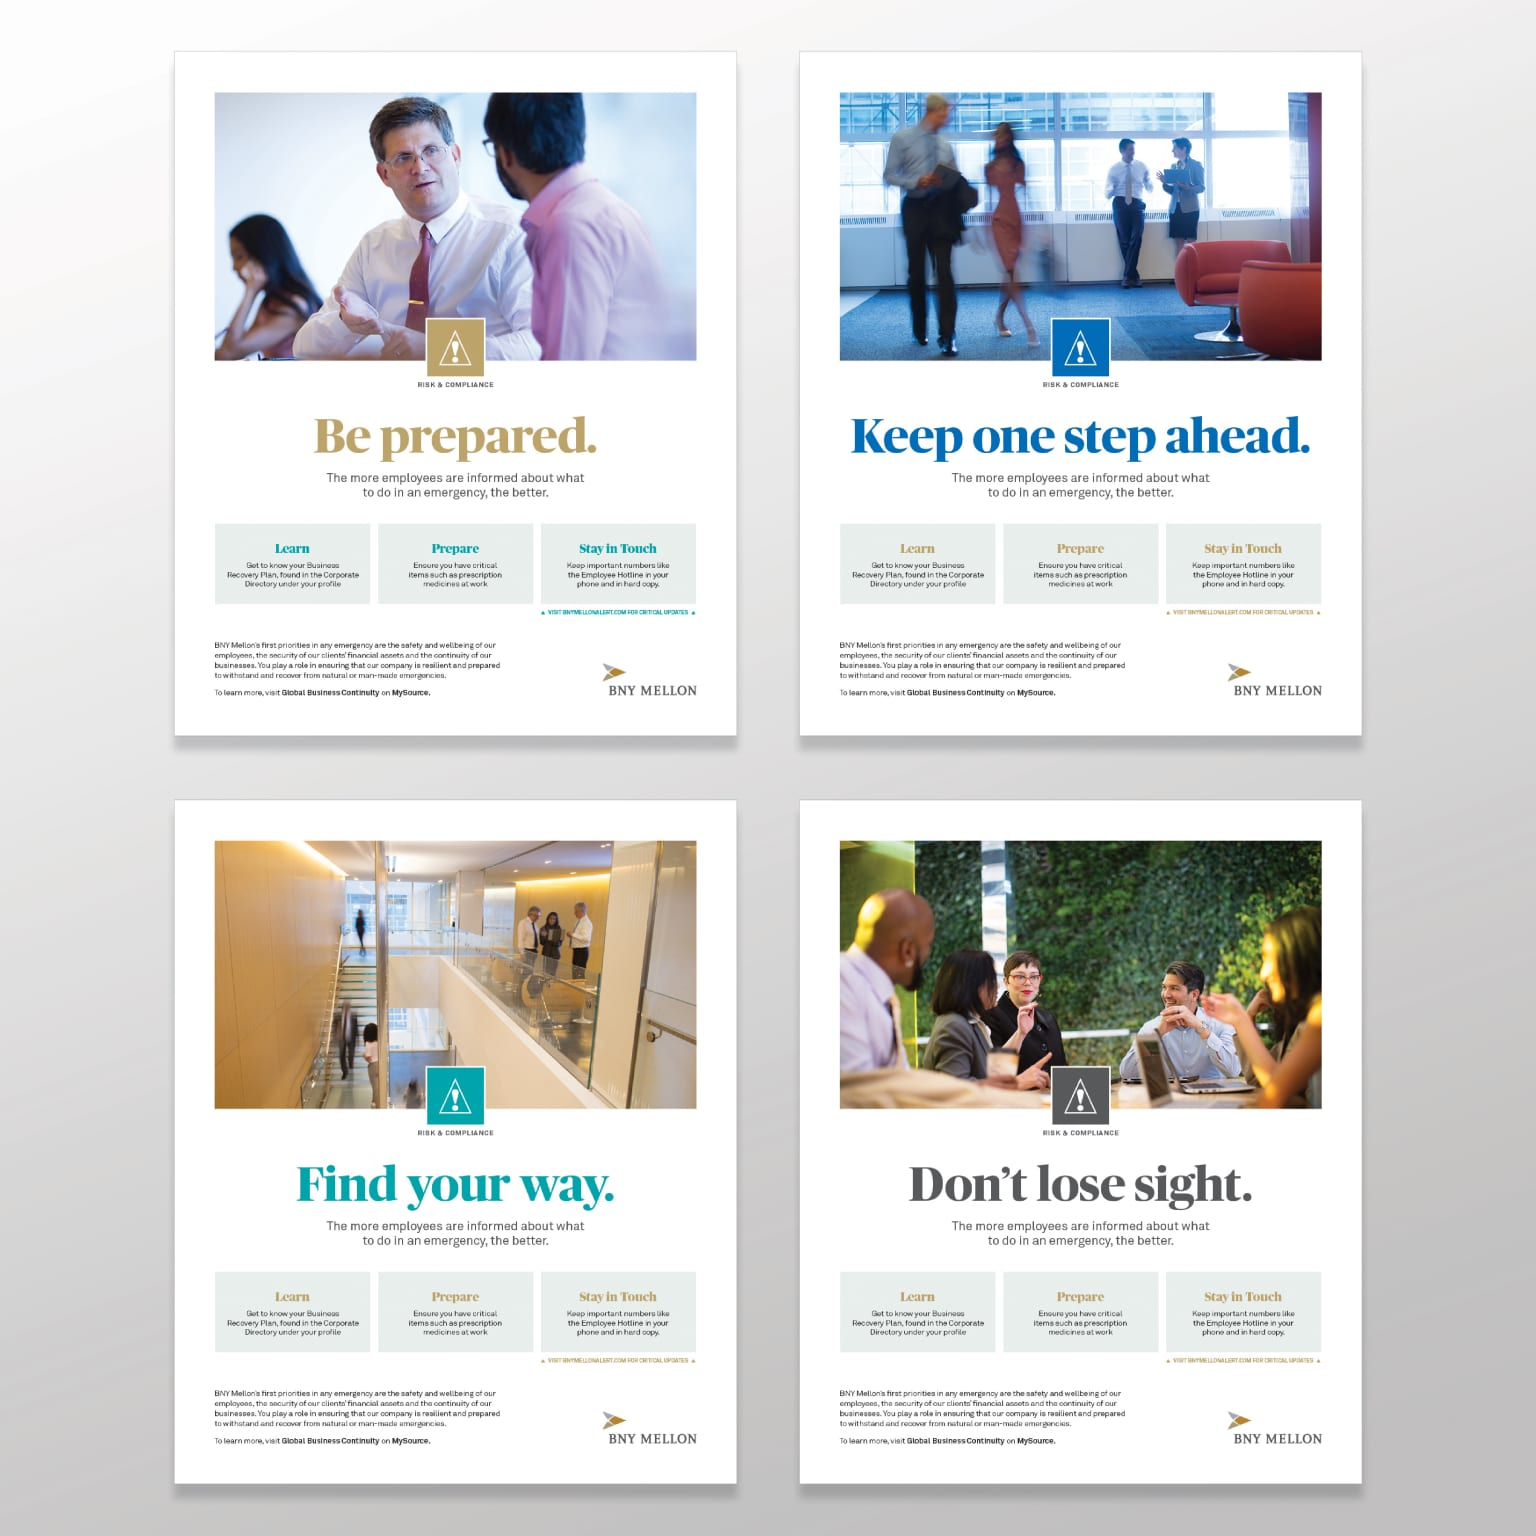 Risk & Compliance Poster Campaign